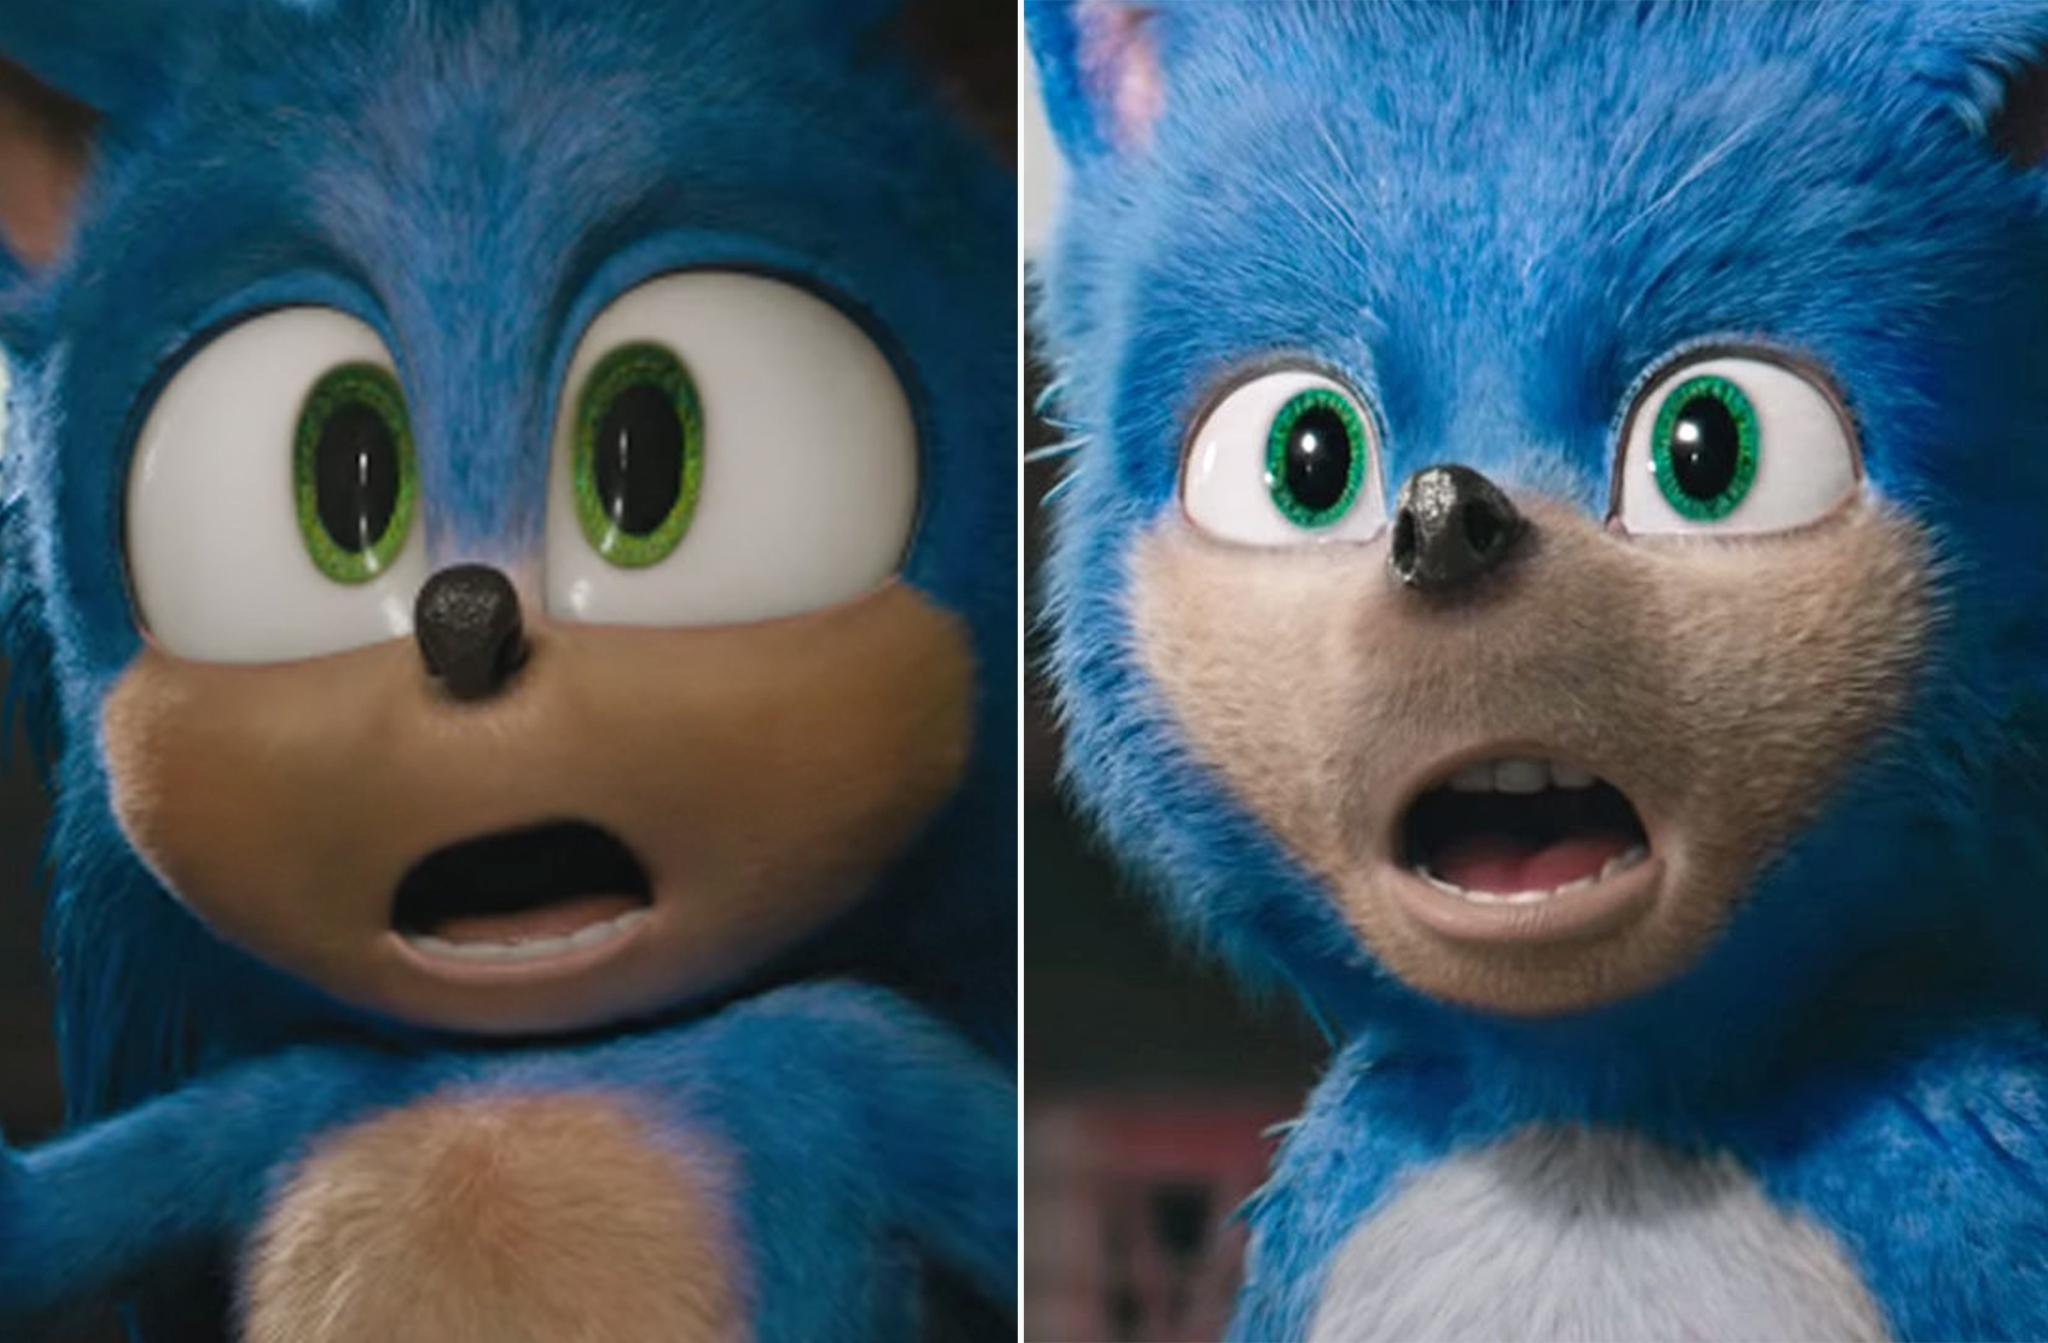 sonic the hedgehog 2019 vs 2020